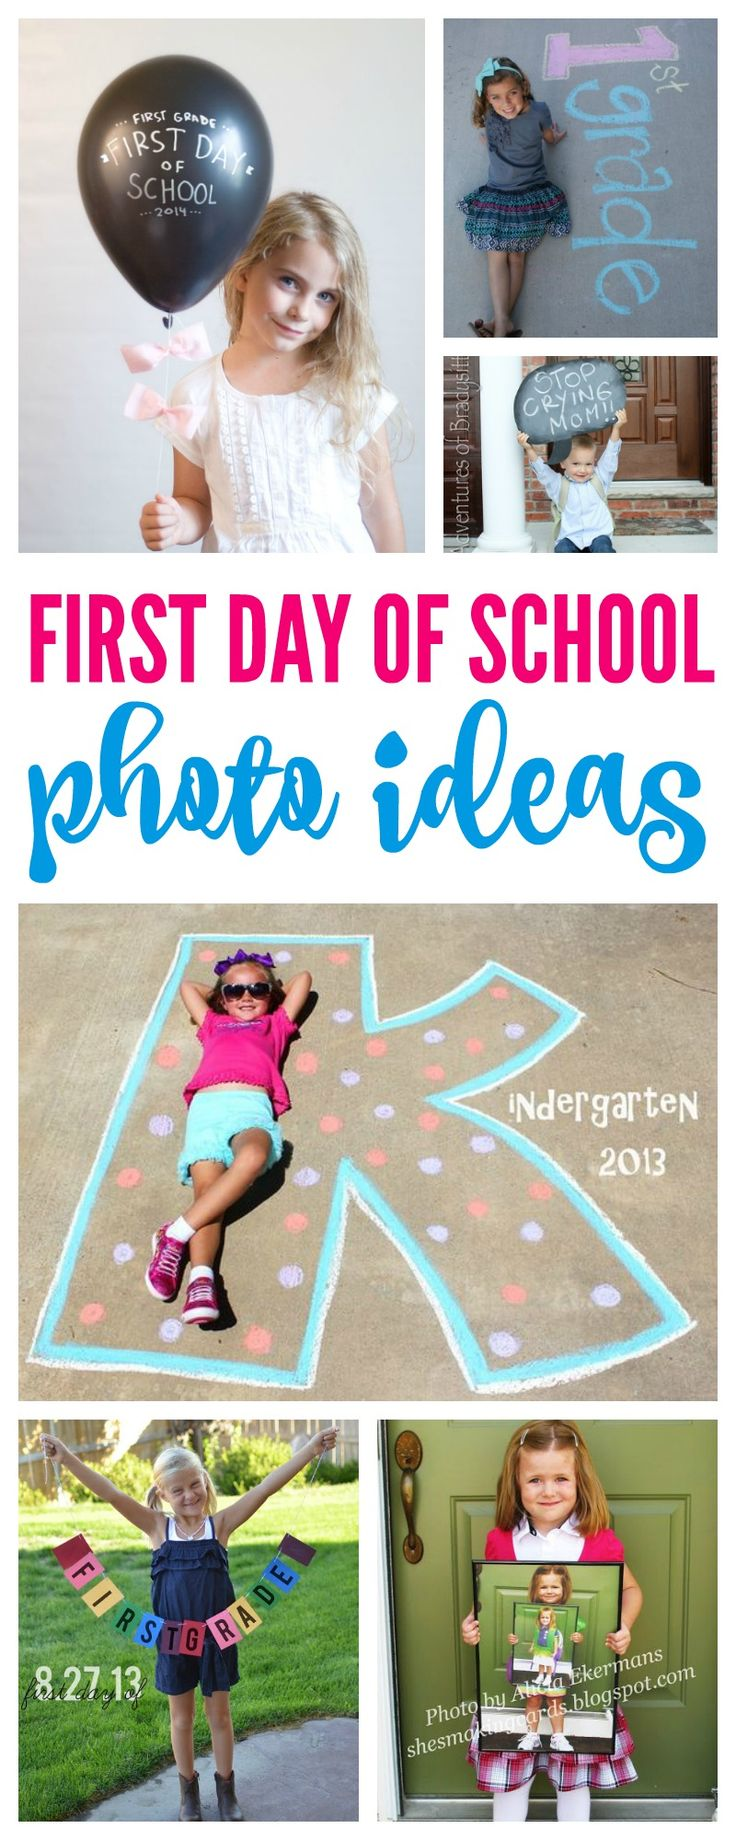 First Day of School Photo Ideas! Capture the back to school moments each year for your kids!